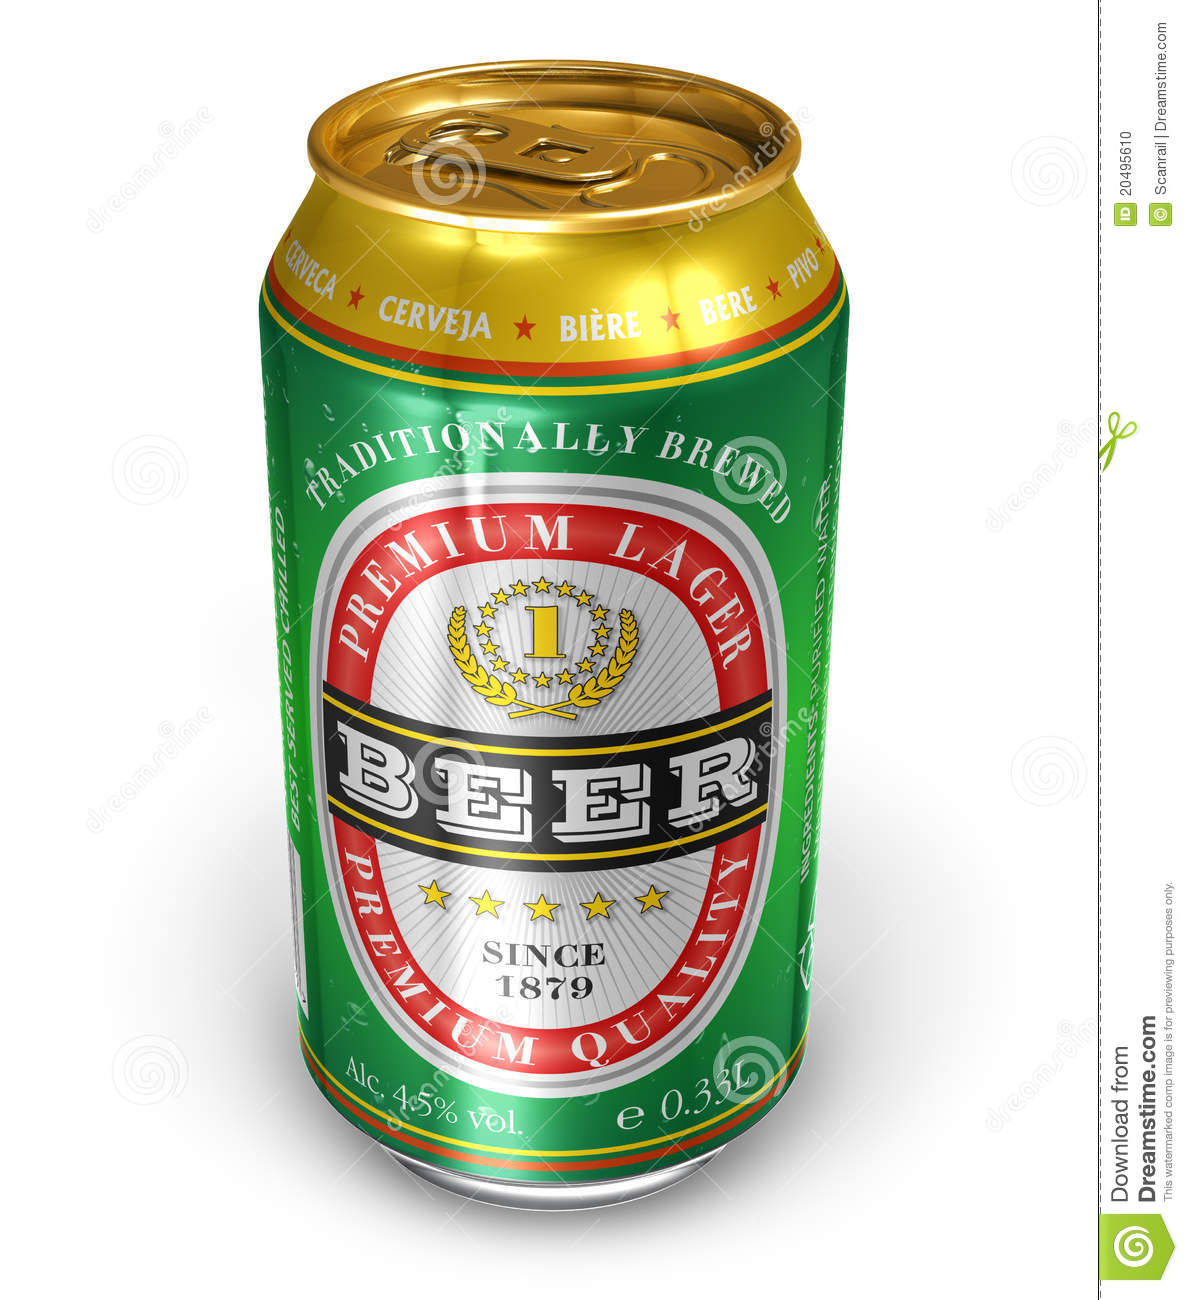 beer can clipart free - Clipground Crushed Beer Can